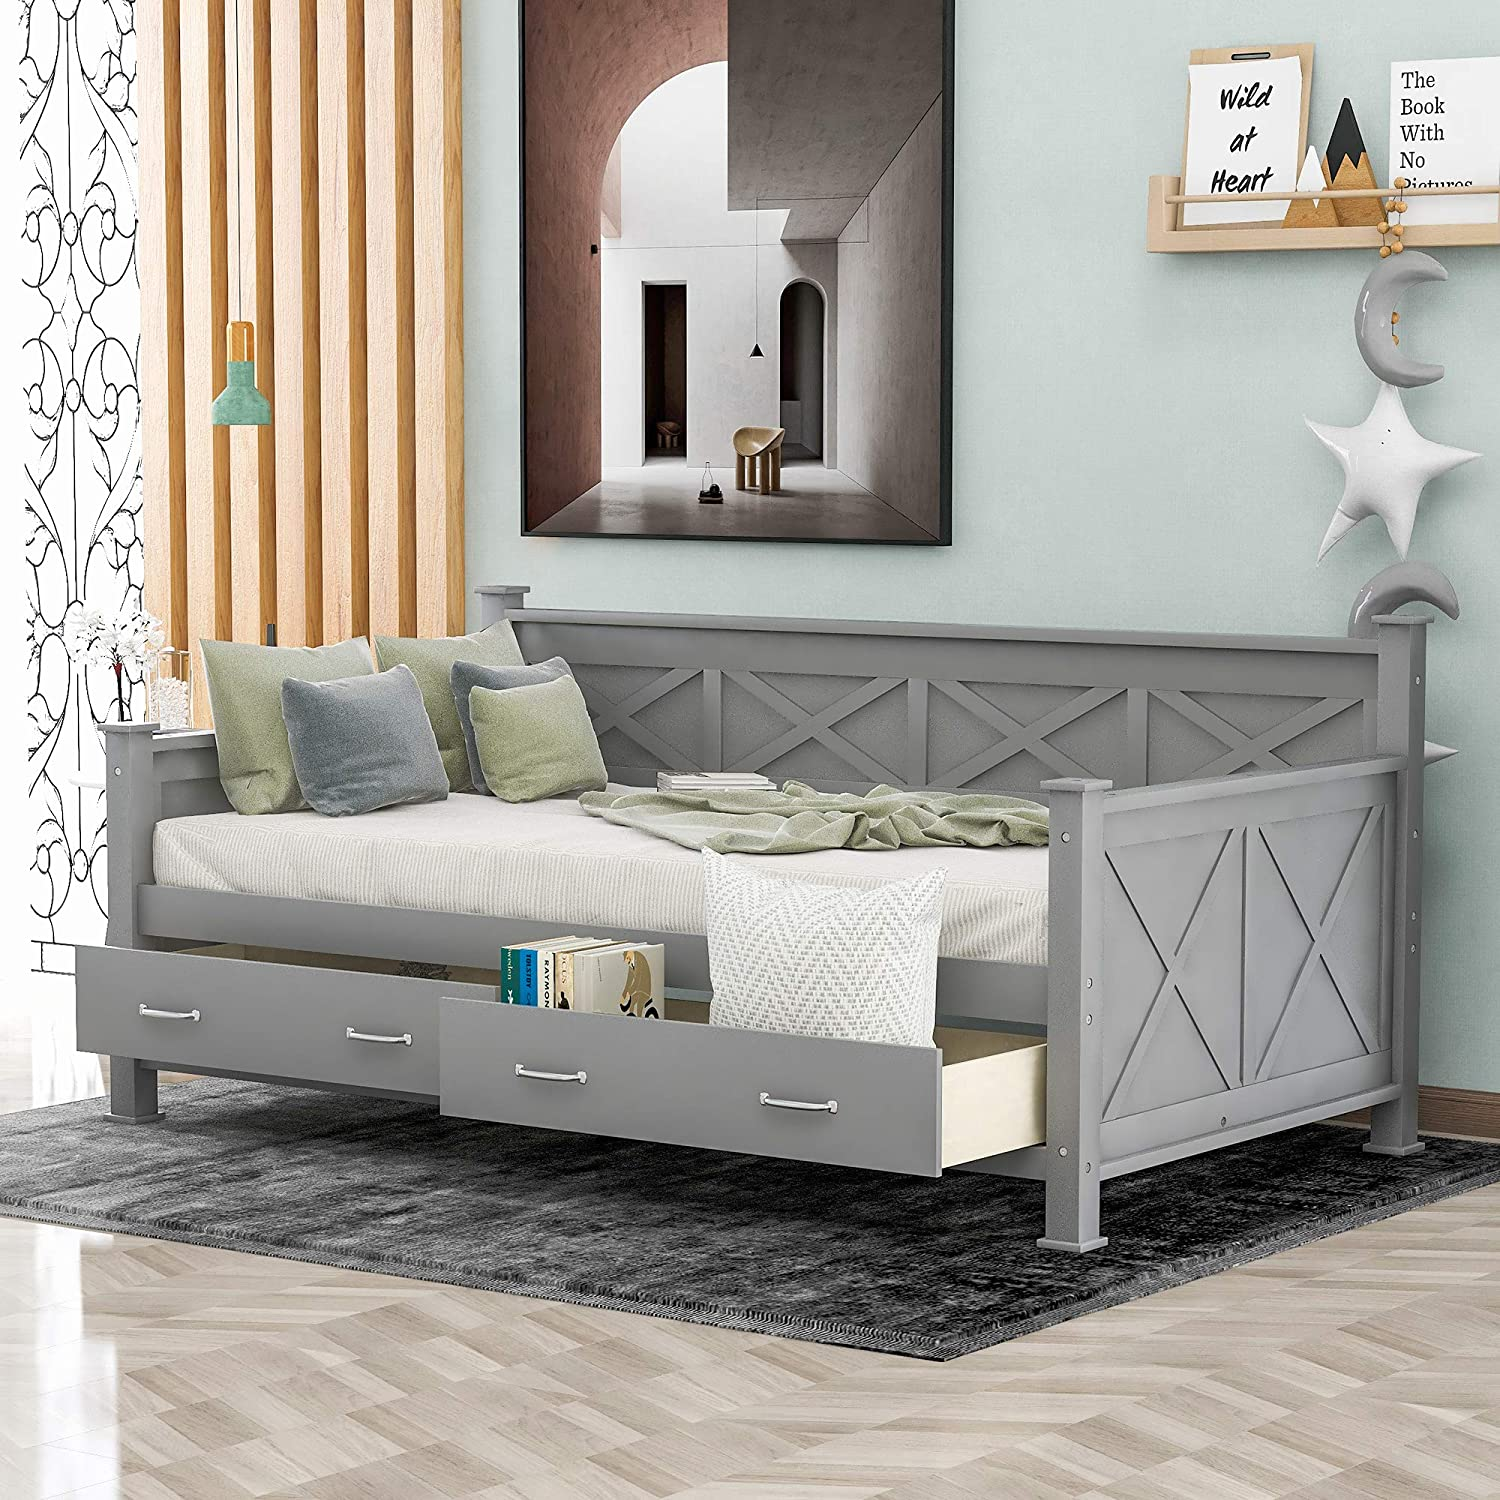 SOFTSEA Wooden Twin National uniform free shipping Daybed with Drawers So 2 Large Space-Saving Popular overseas